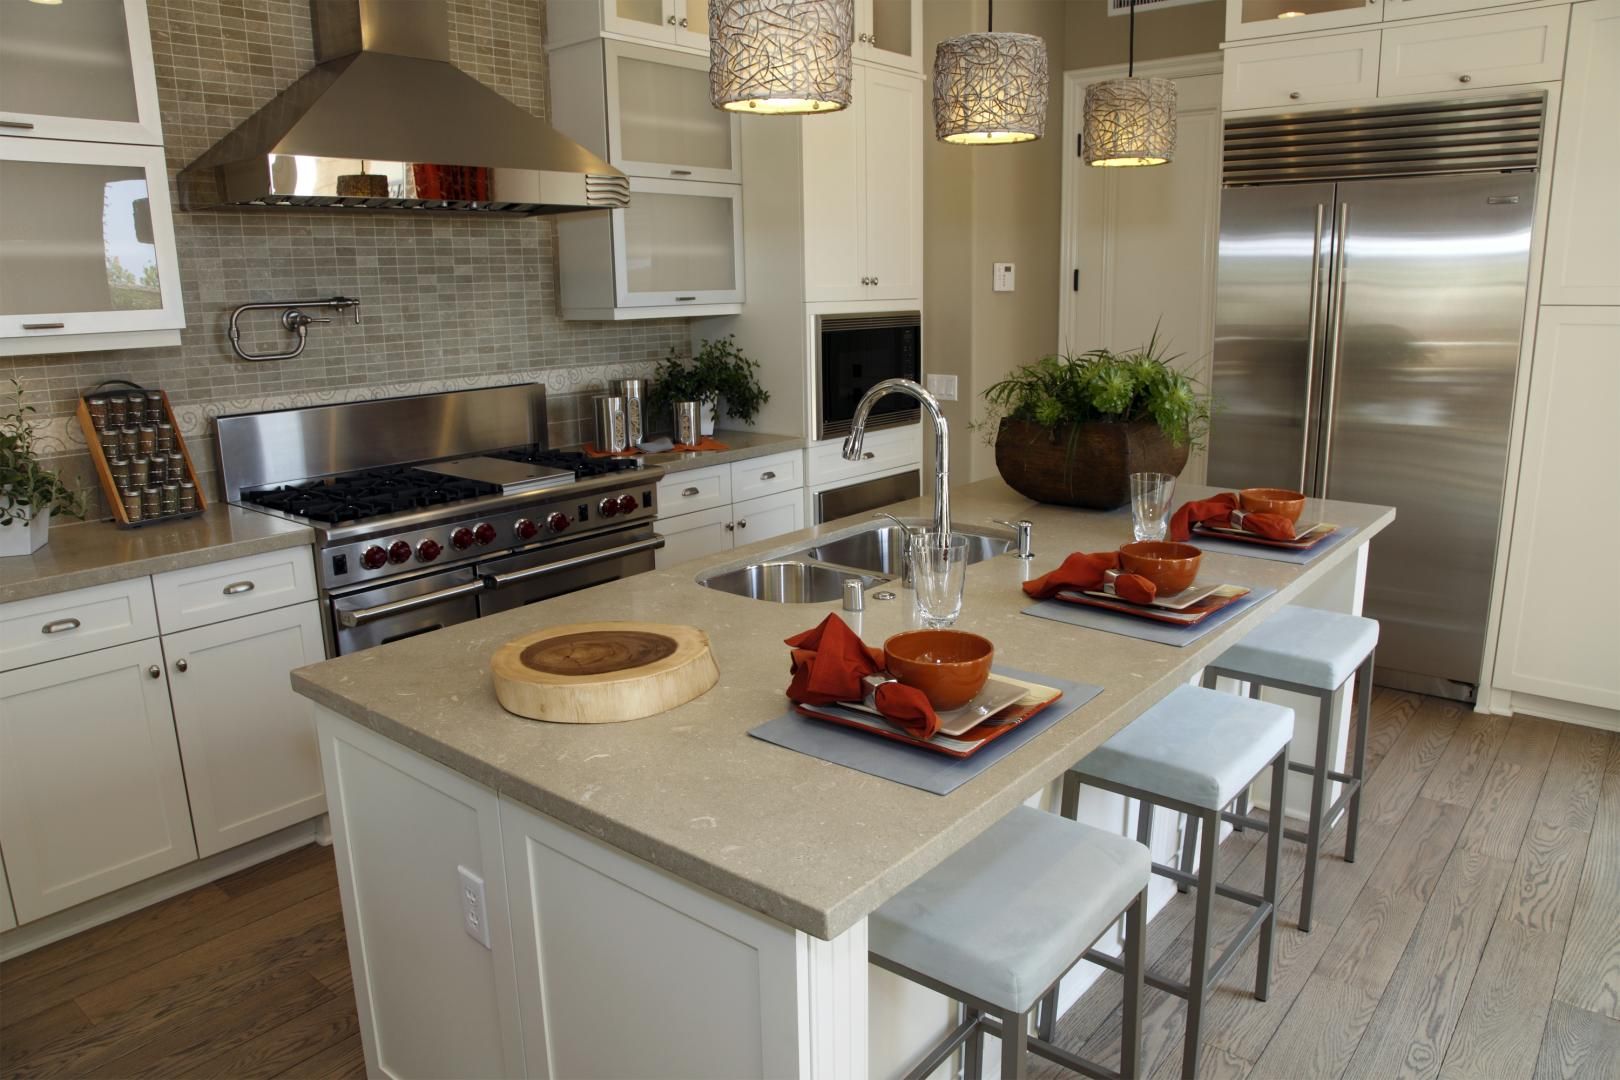 kitchen design concepts. Functional Kitchen Designs Design Concepts  Mattituck Riverhead Cutchogue